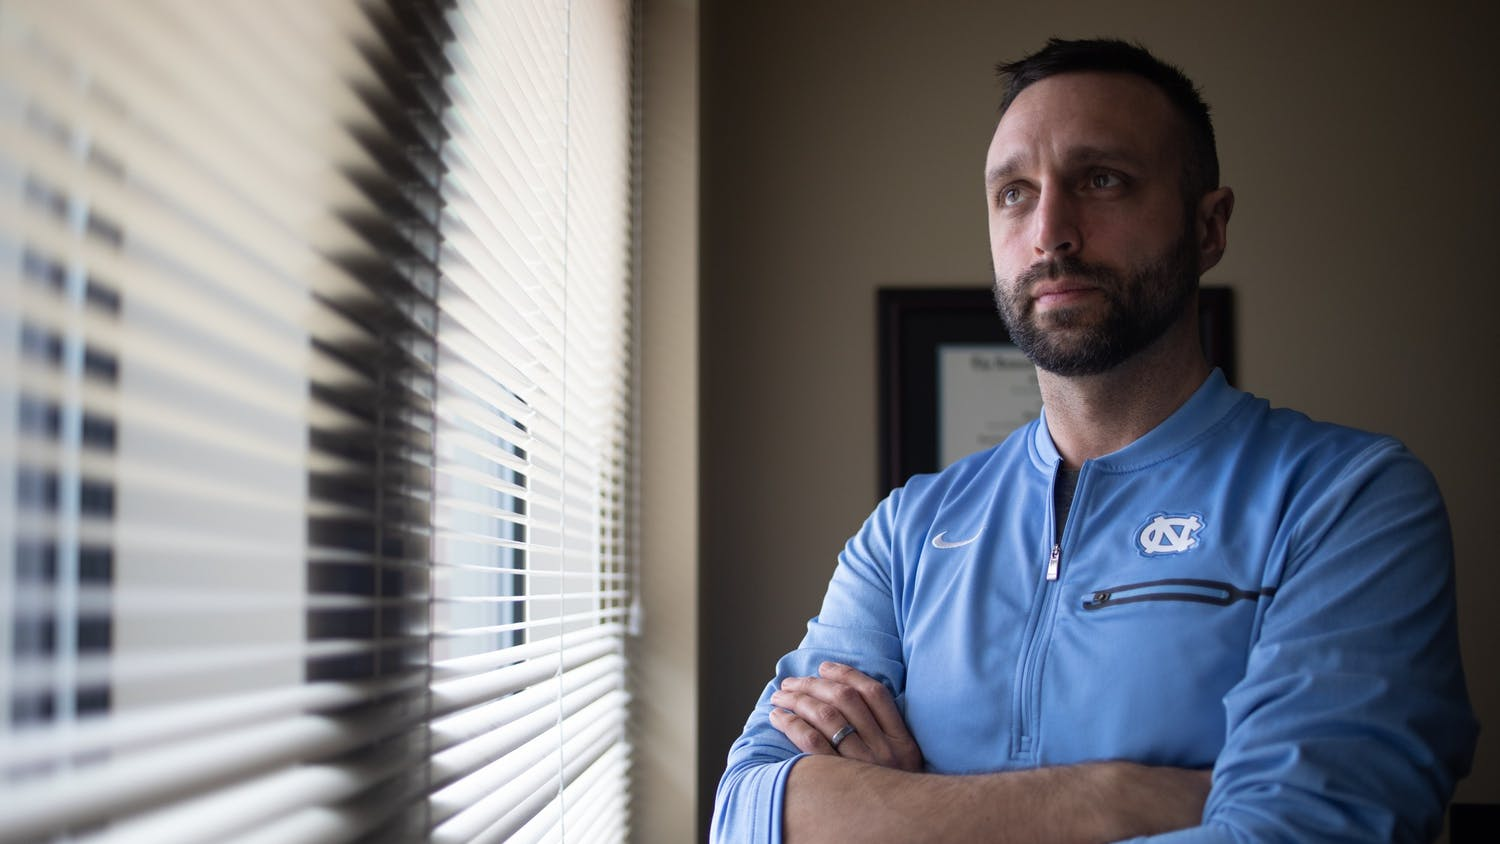 Matt Jednak, UNC's head fencing coach, poses for a portrait in his office on Friday, Jan. 24, 2020.